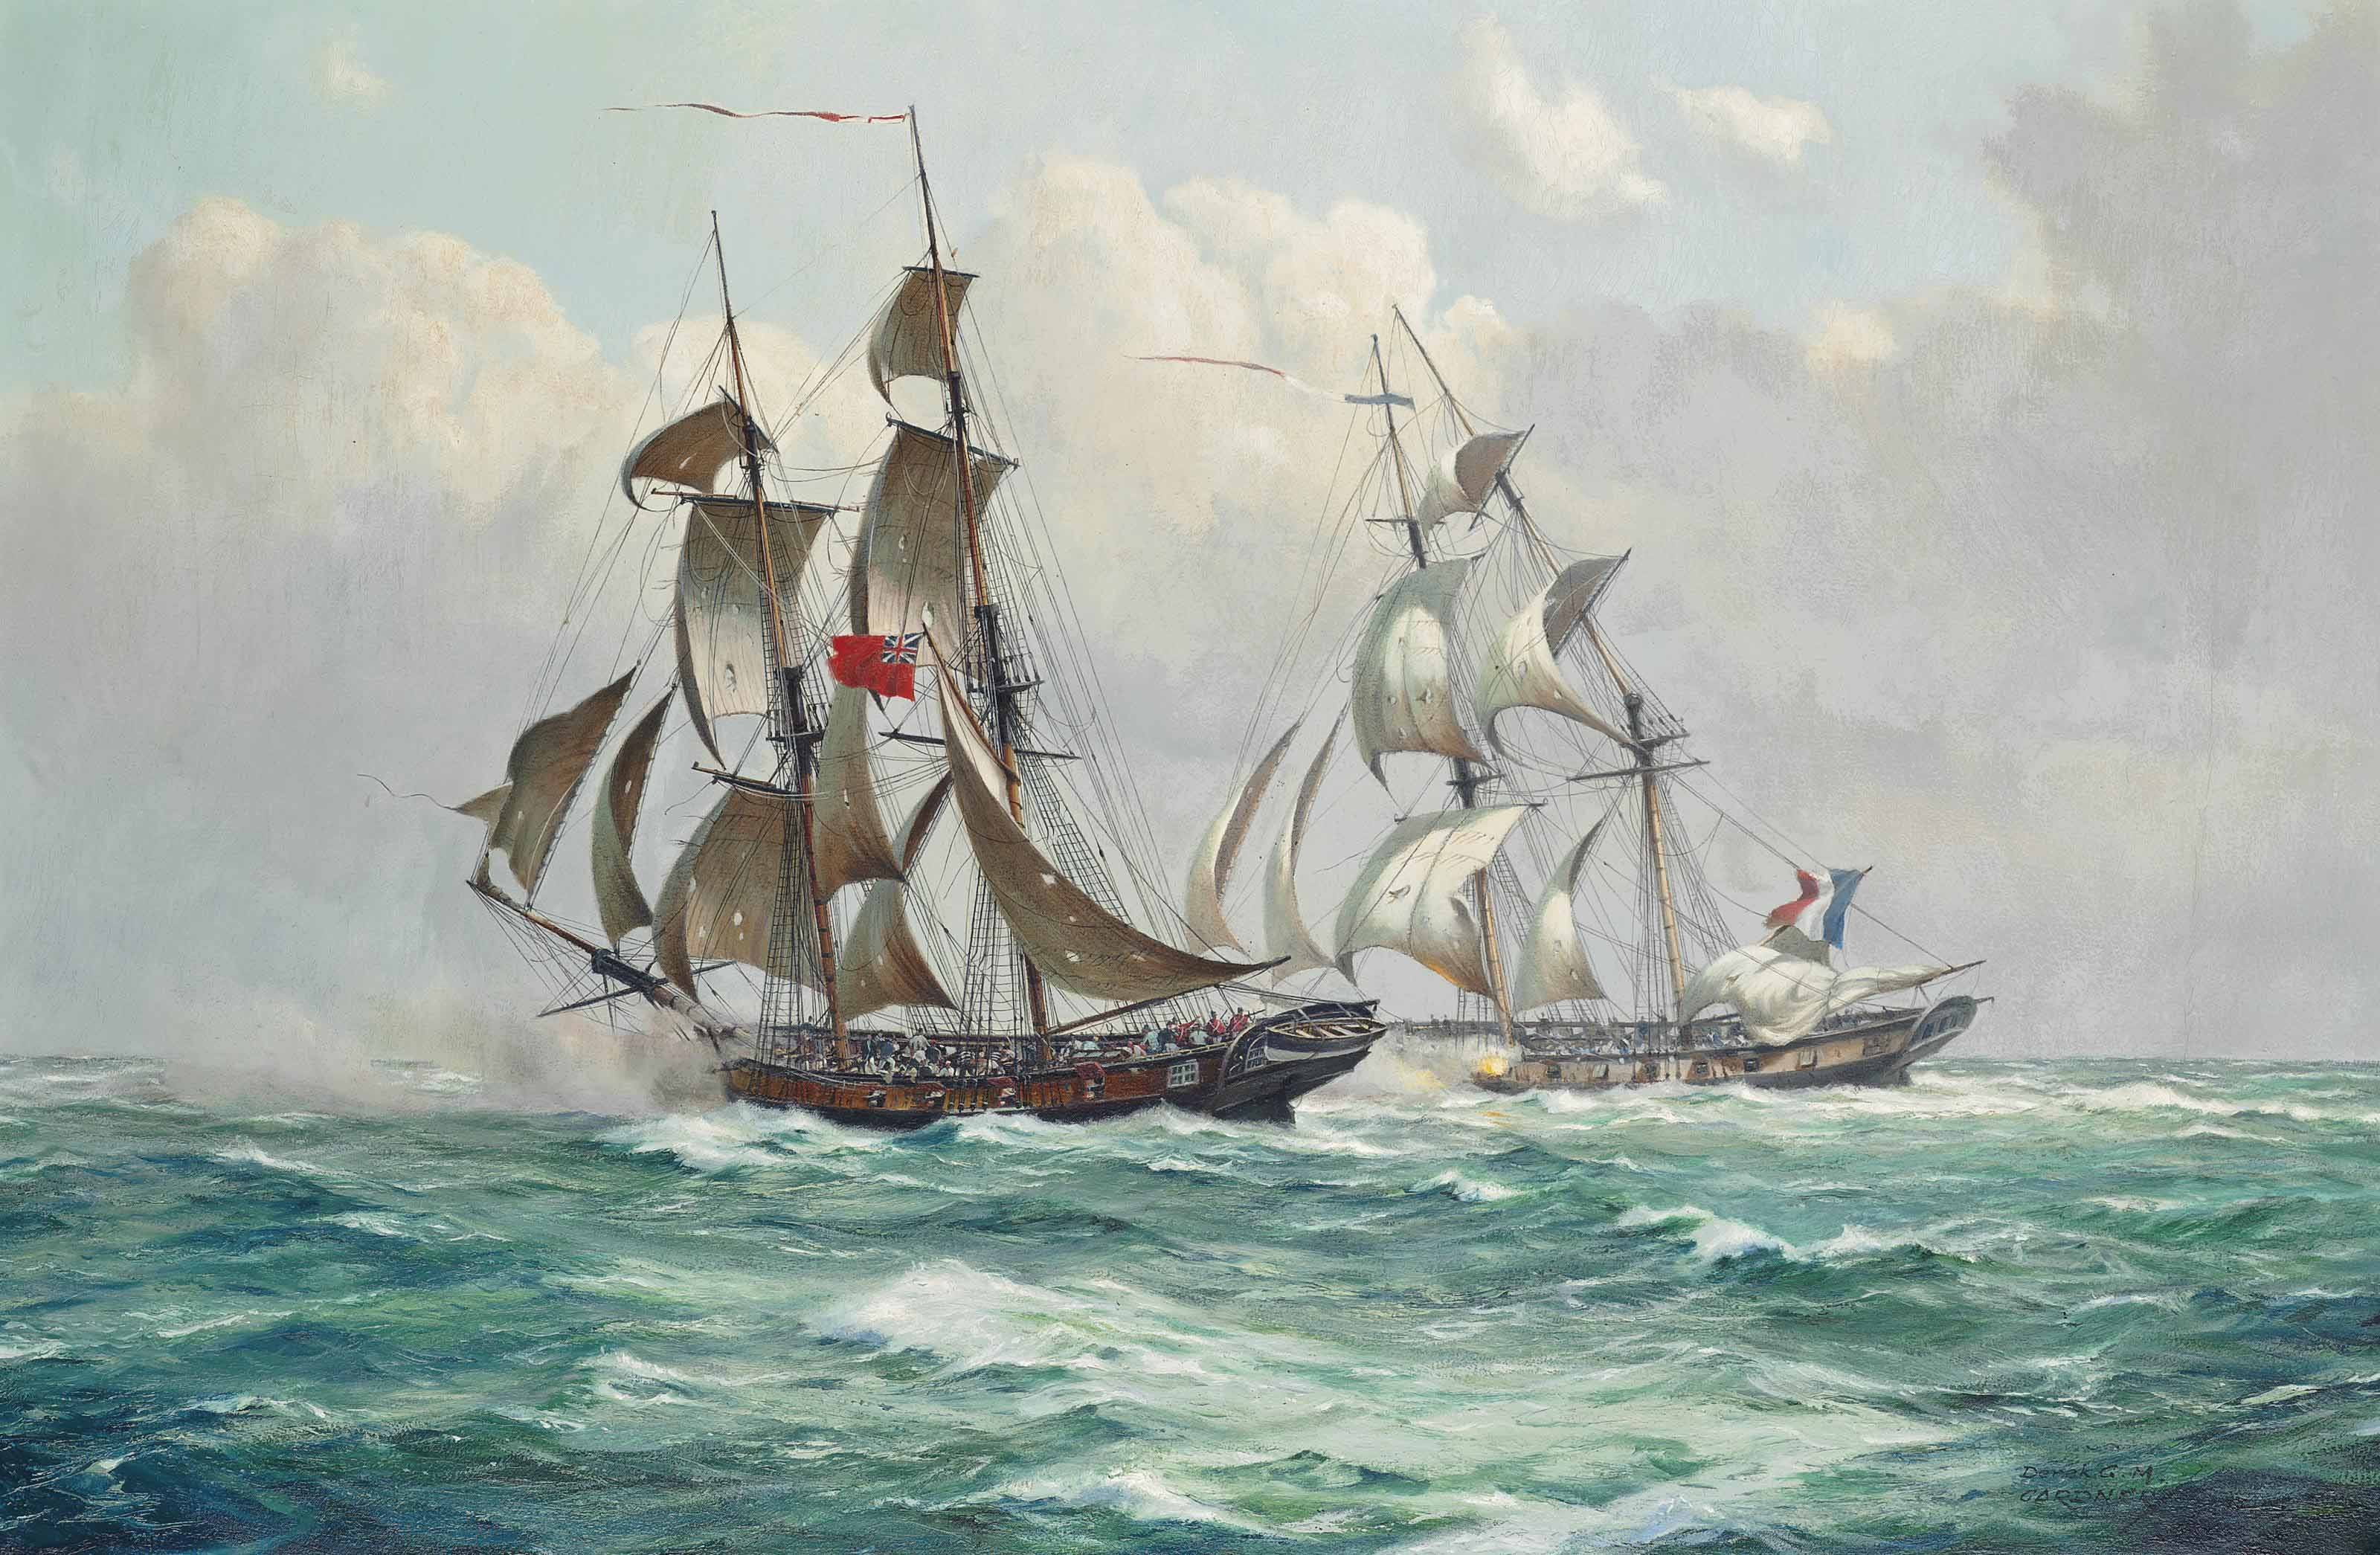 A fierce engagement between H.M.S. Penguin and the French corvette Oiseau on  21st August 1797